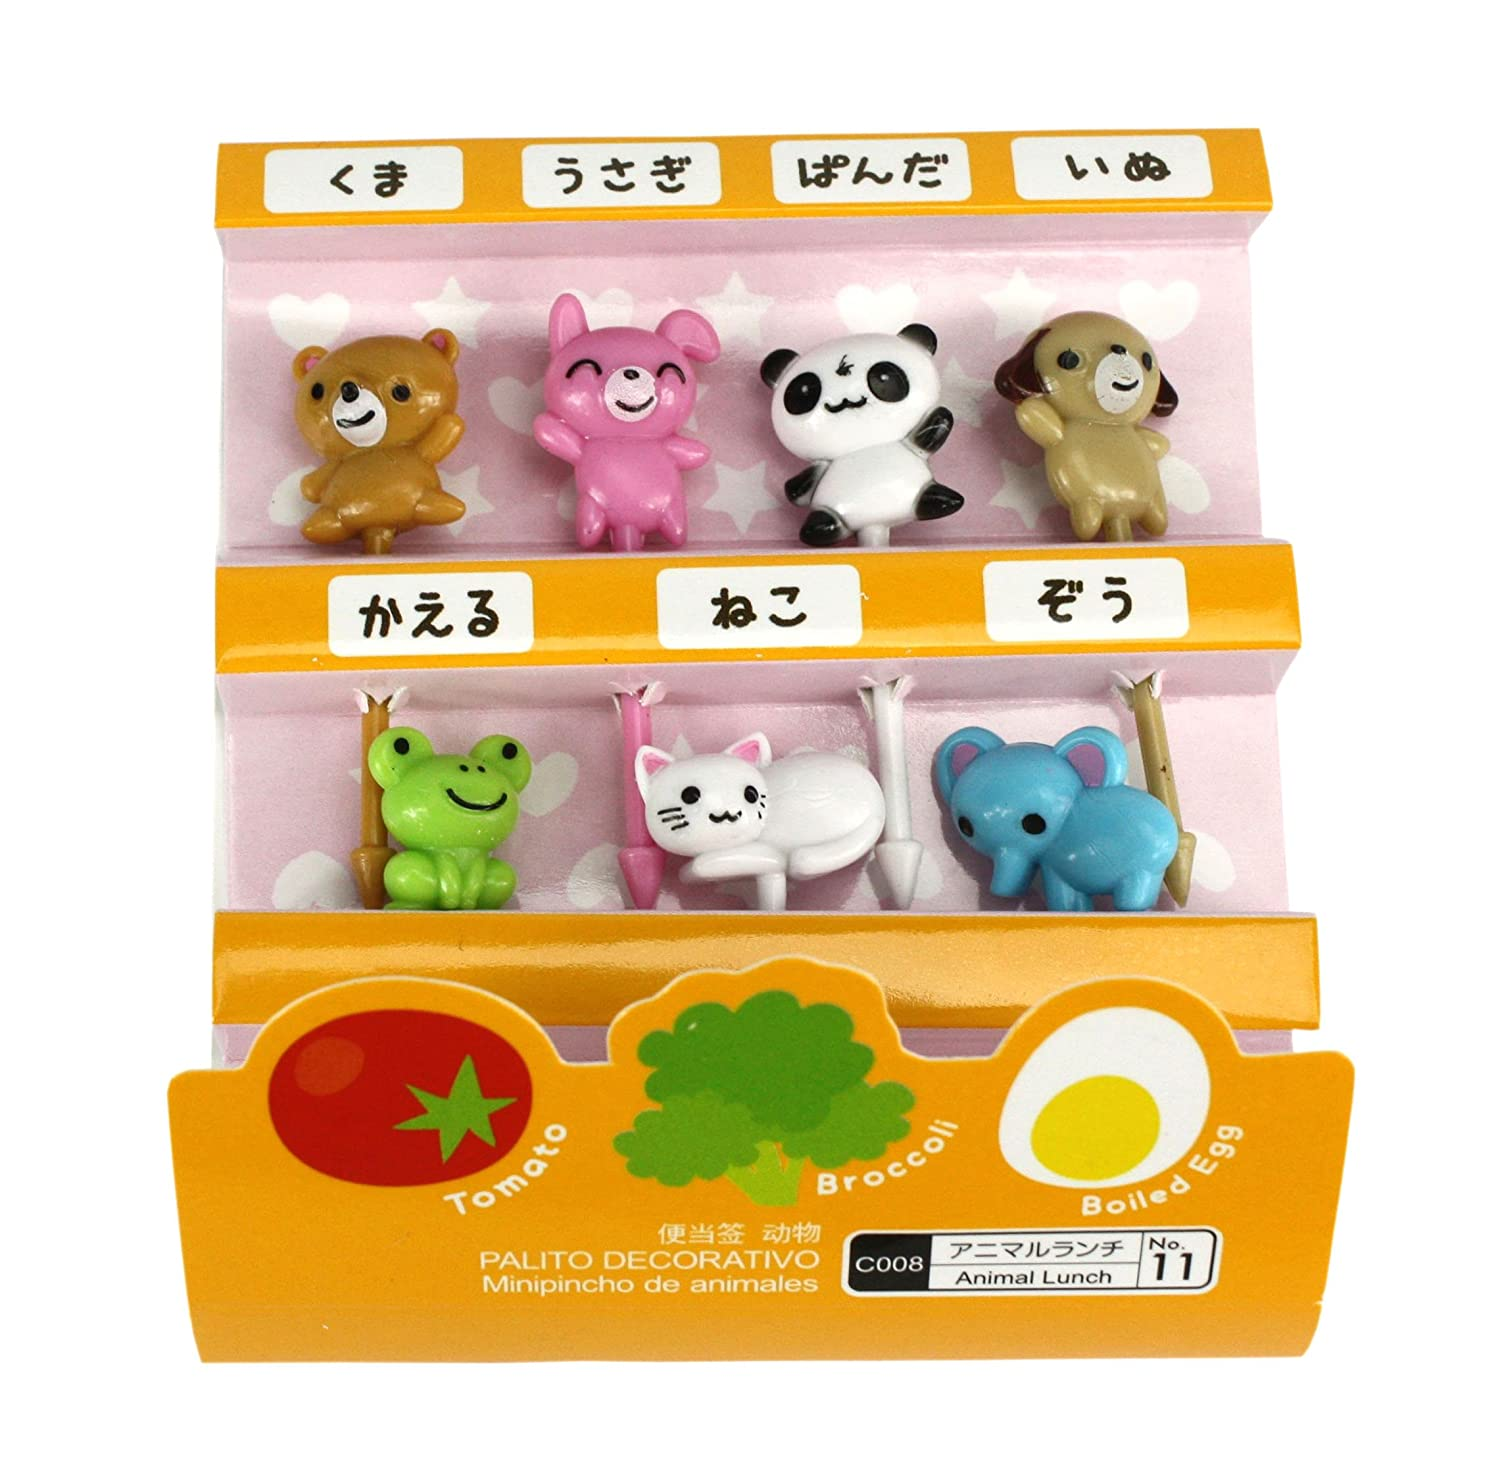 Cute Japanese Food Picks for Kids Bento Box Lunch - Animal Designs Daiso